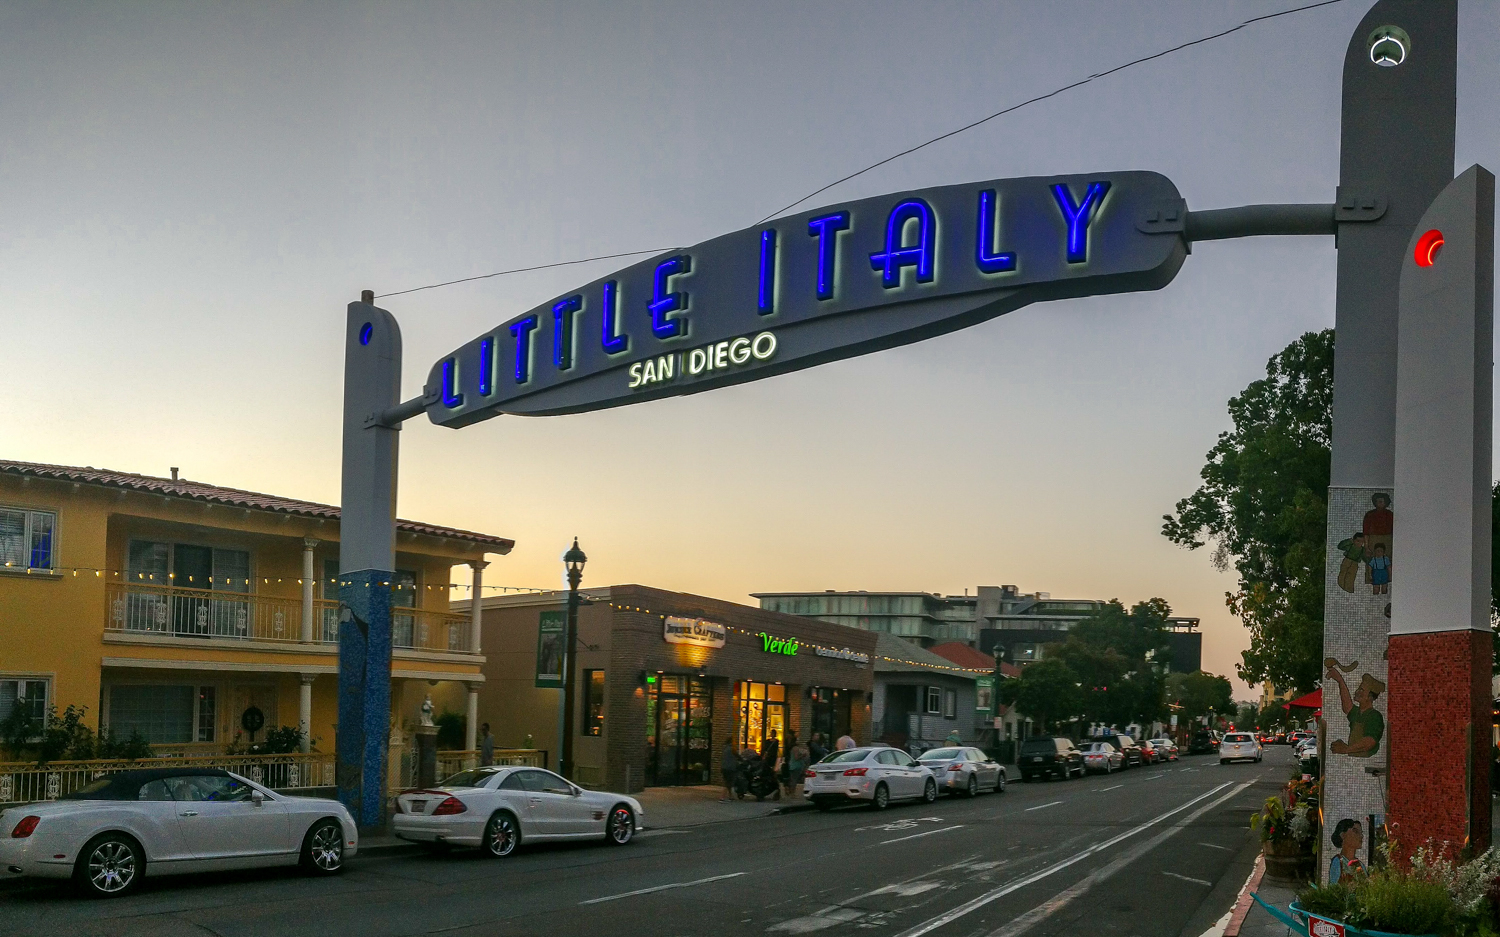 Little Italy, San Diego, California, David J Whyte @ Linksland.com-5.jpg